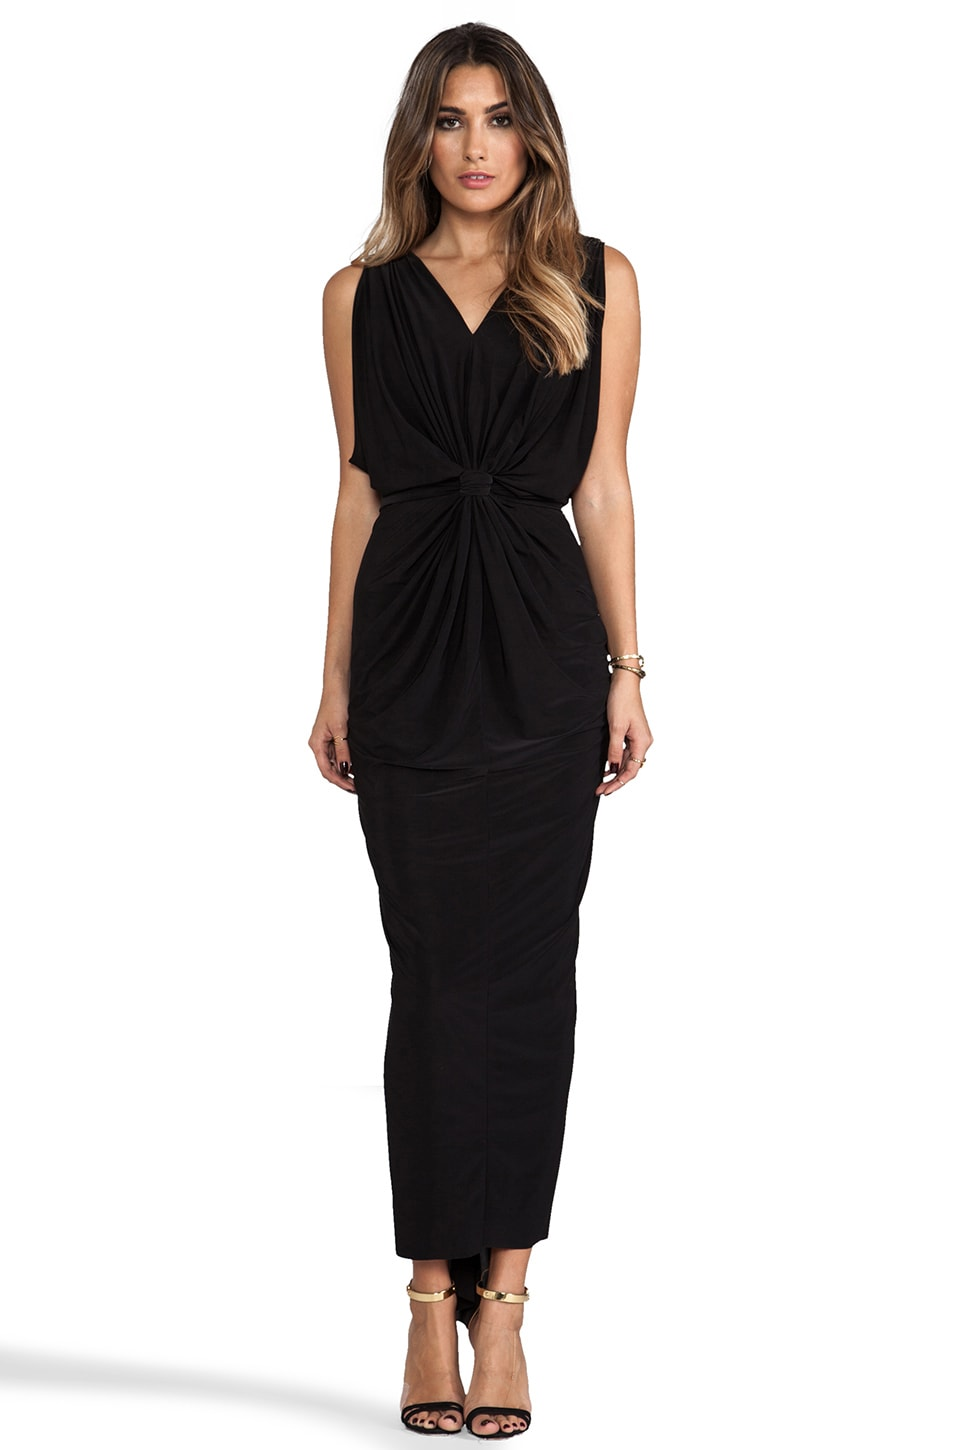 T-Bags LosAngeles Draped Sleeve Maxi Dress in Black